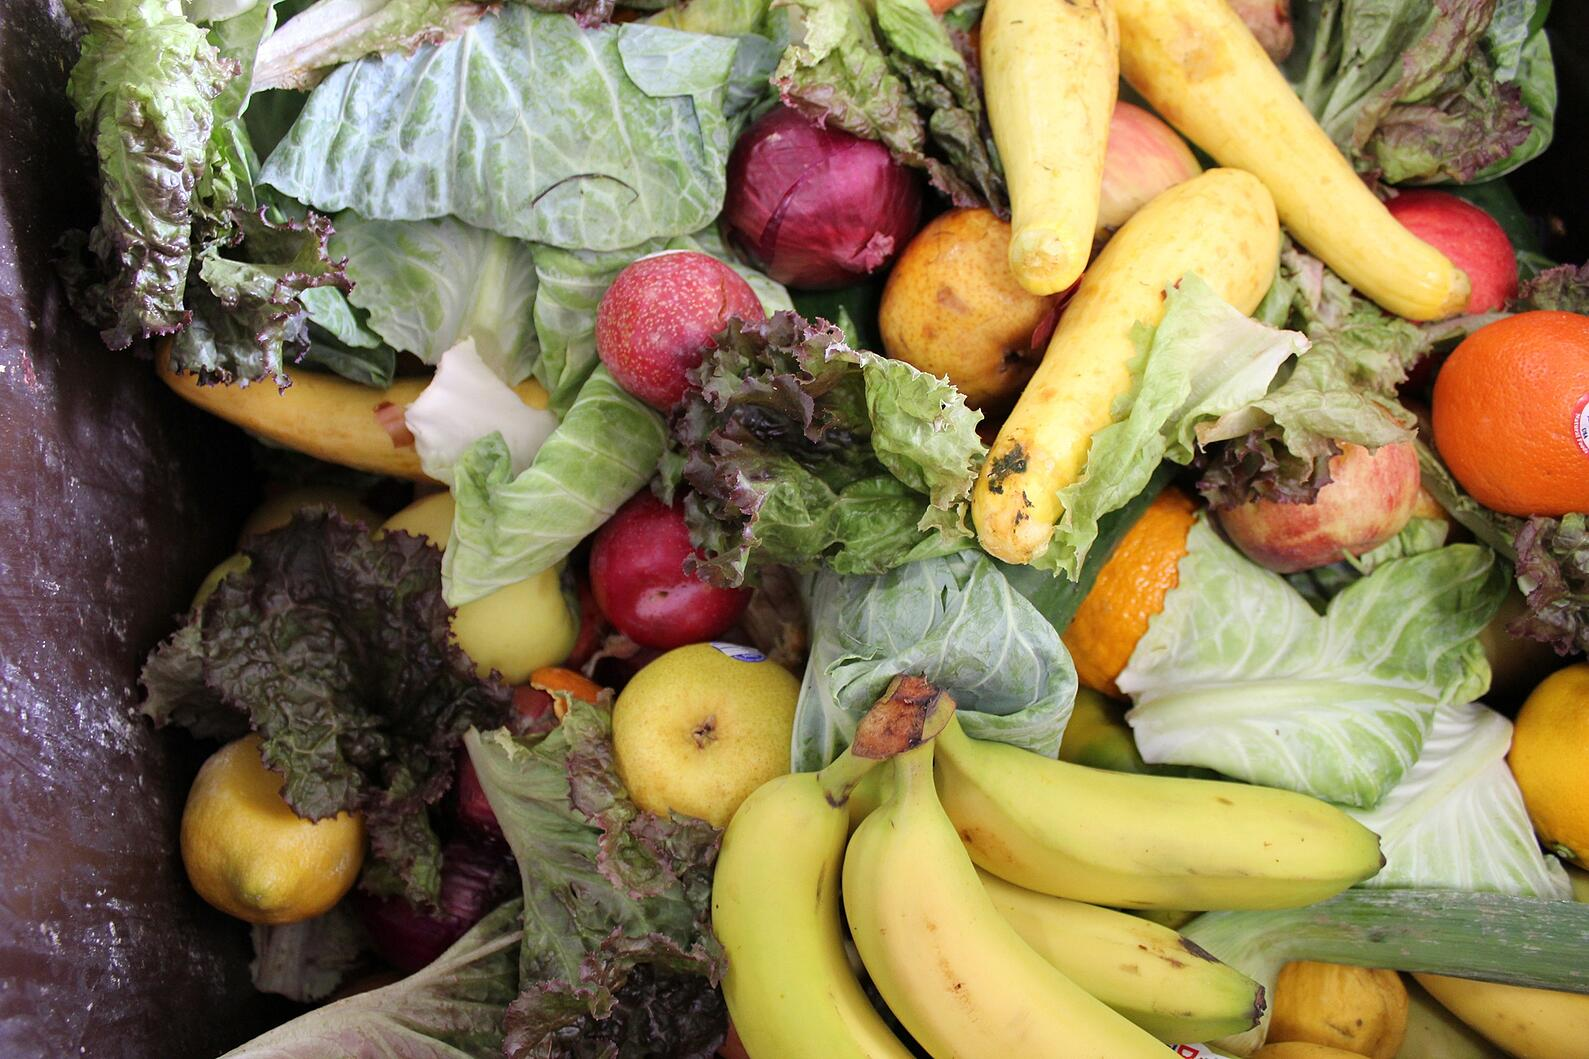 Don't let your food end up in a landfill!